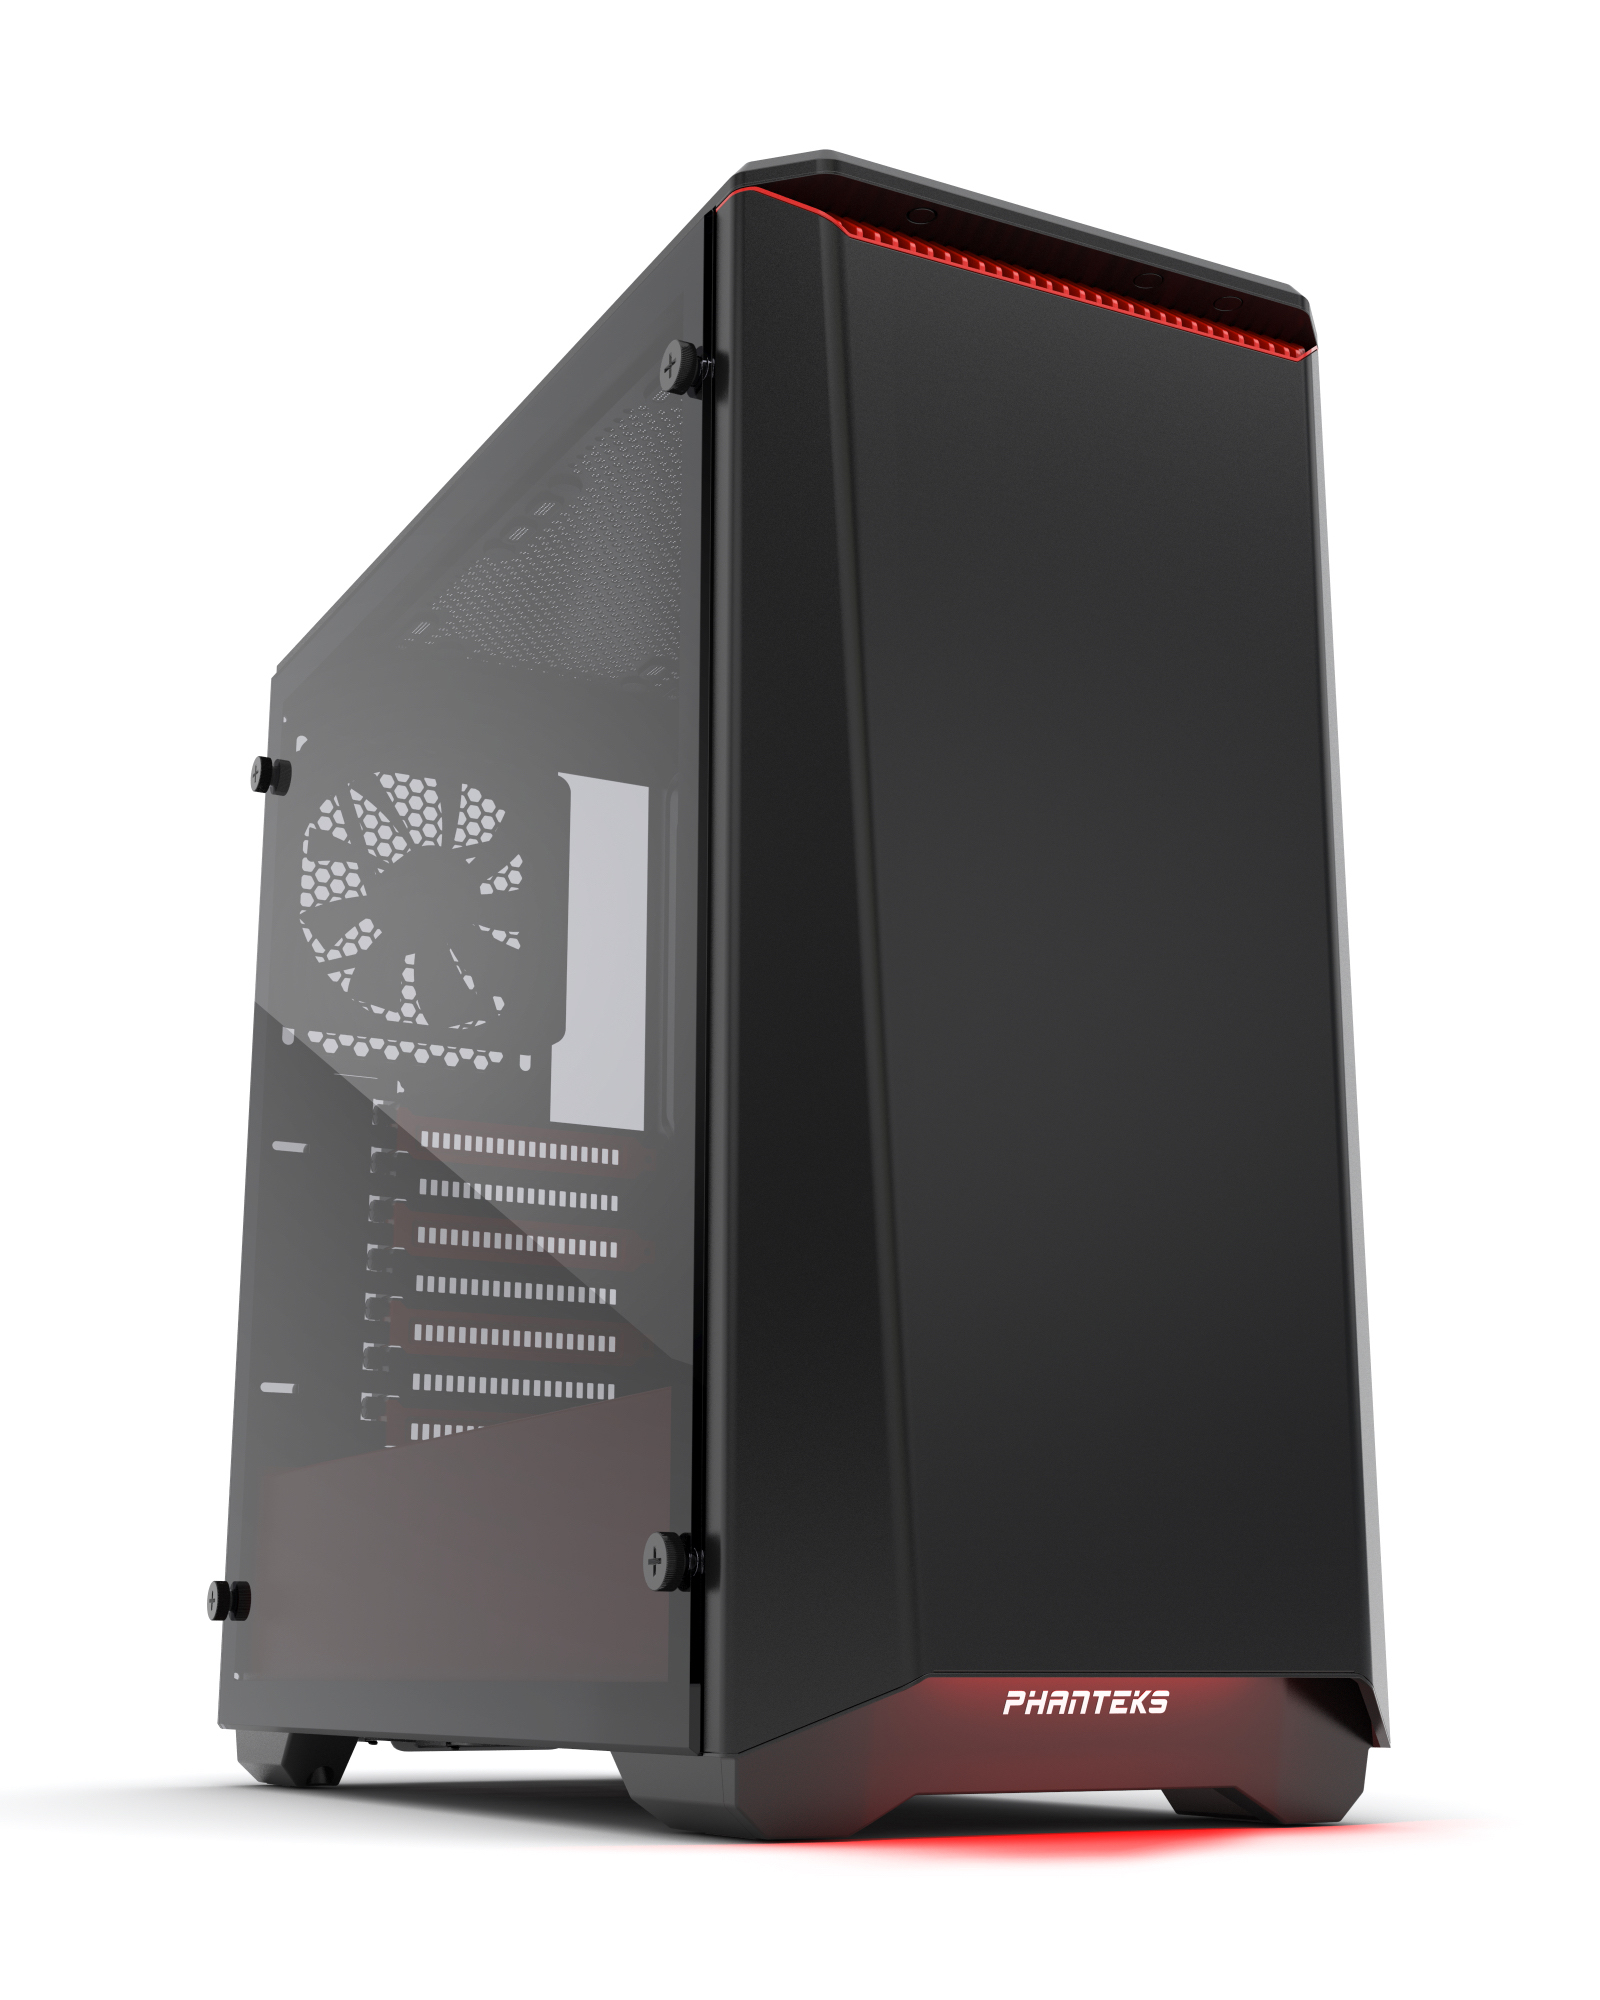 Phanteks Innovative Computer Hardware Design Create Secondary Colors From Multicolored Leds Edn Special Edition Red